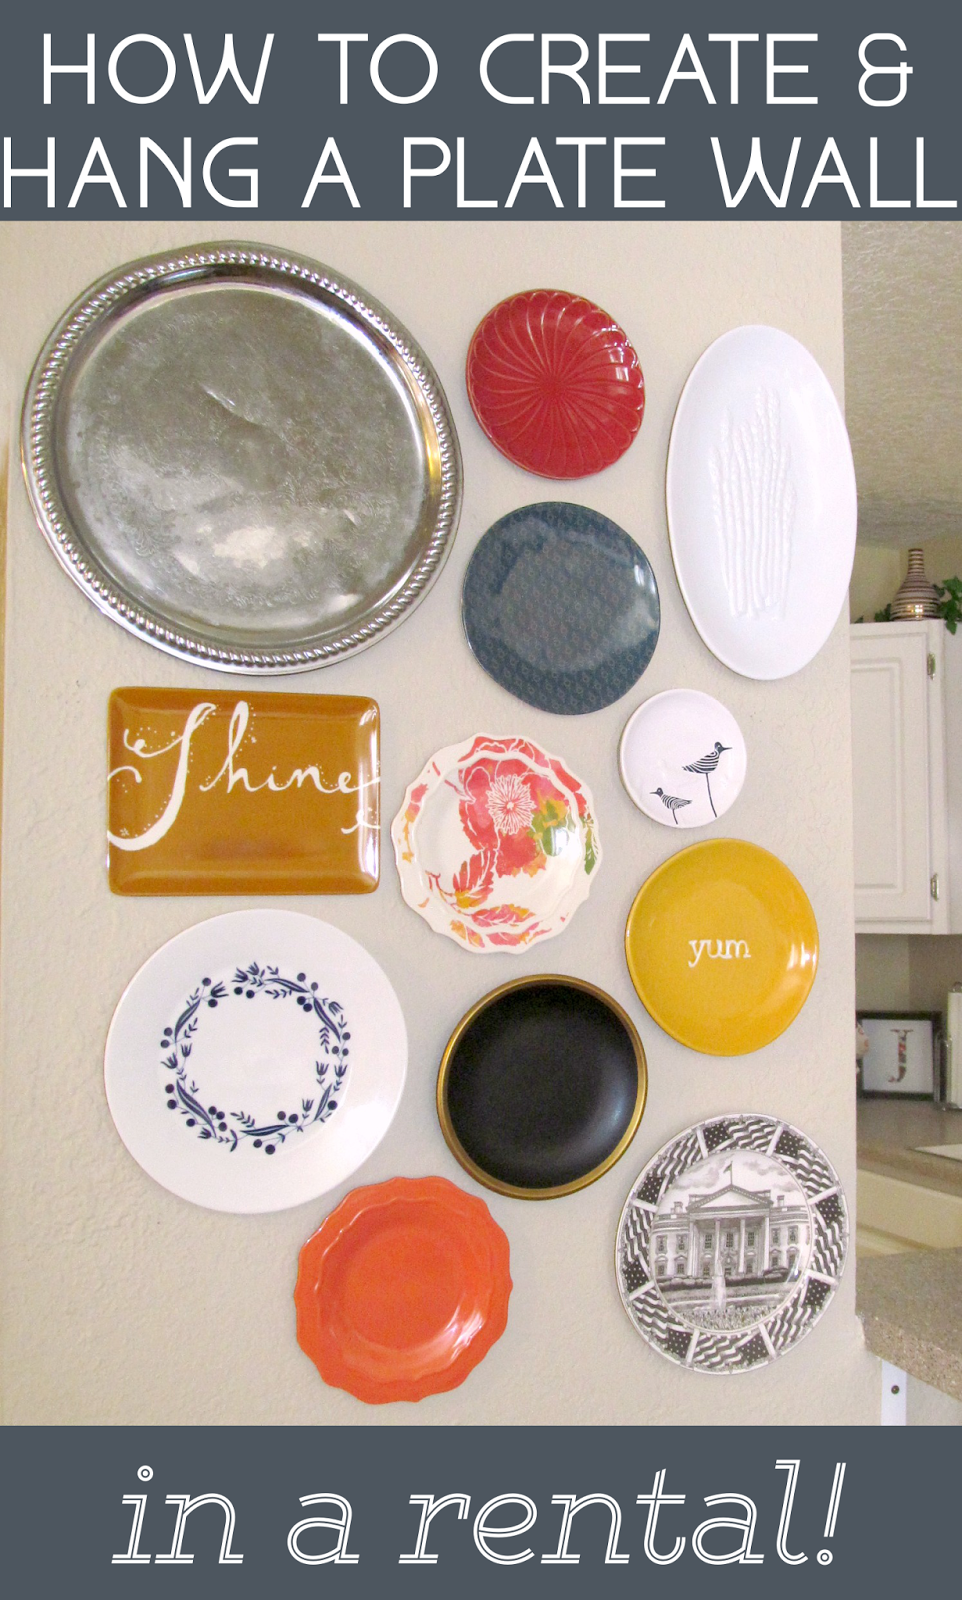 Renting? Then this is a must pin! How to Create & Hang a Plate Wall for a Rental!